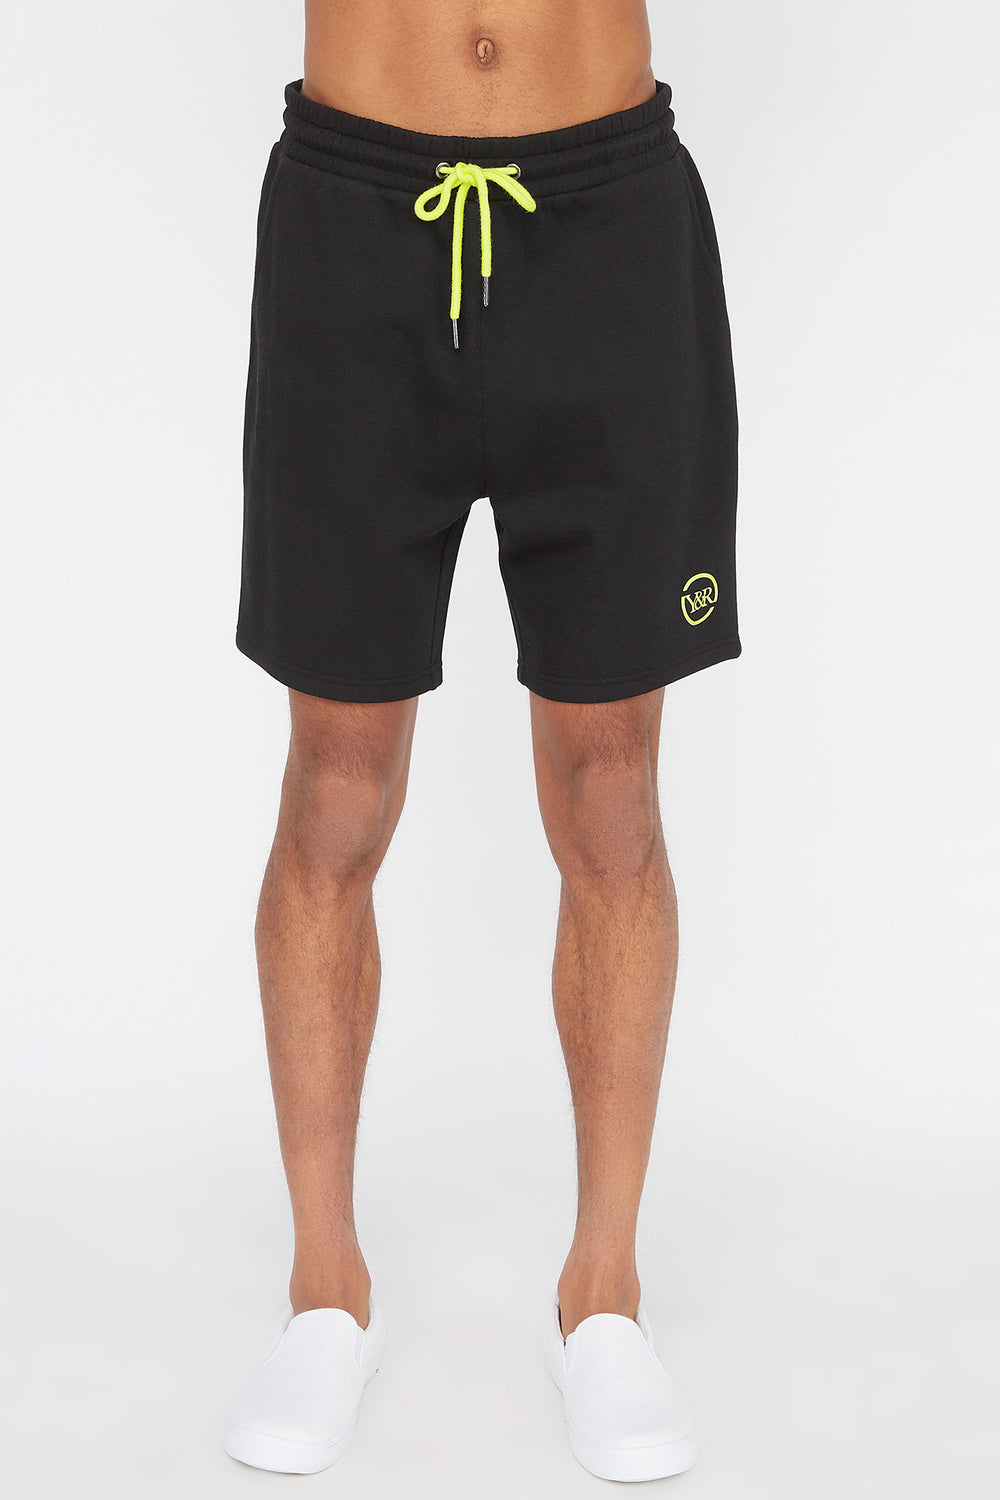 Young & Reckless Mens Neon Short Black